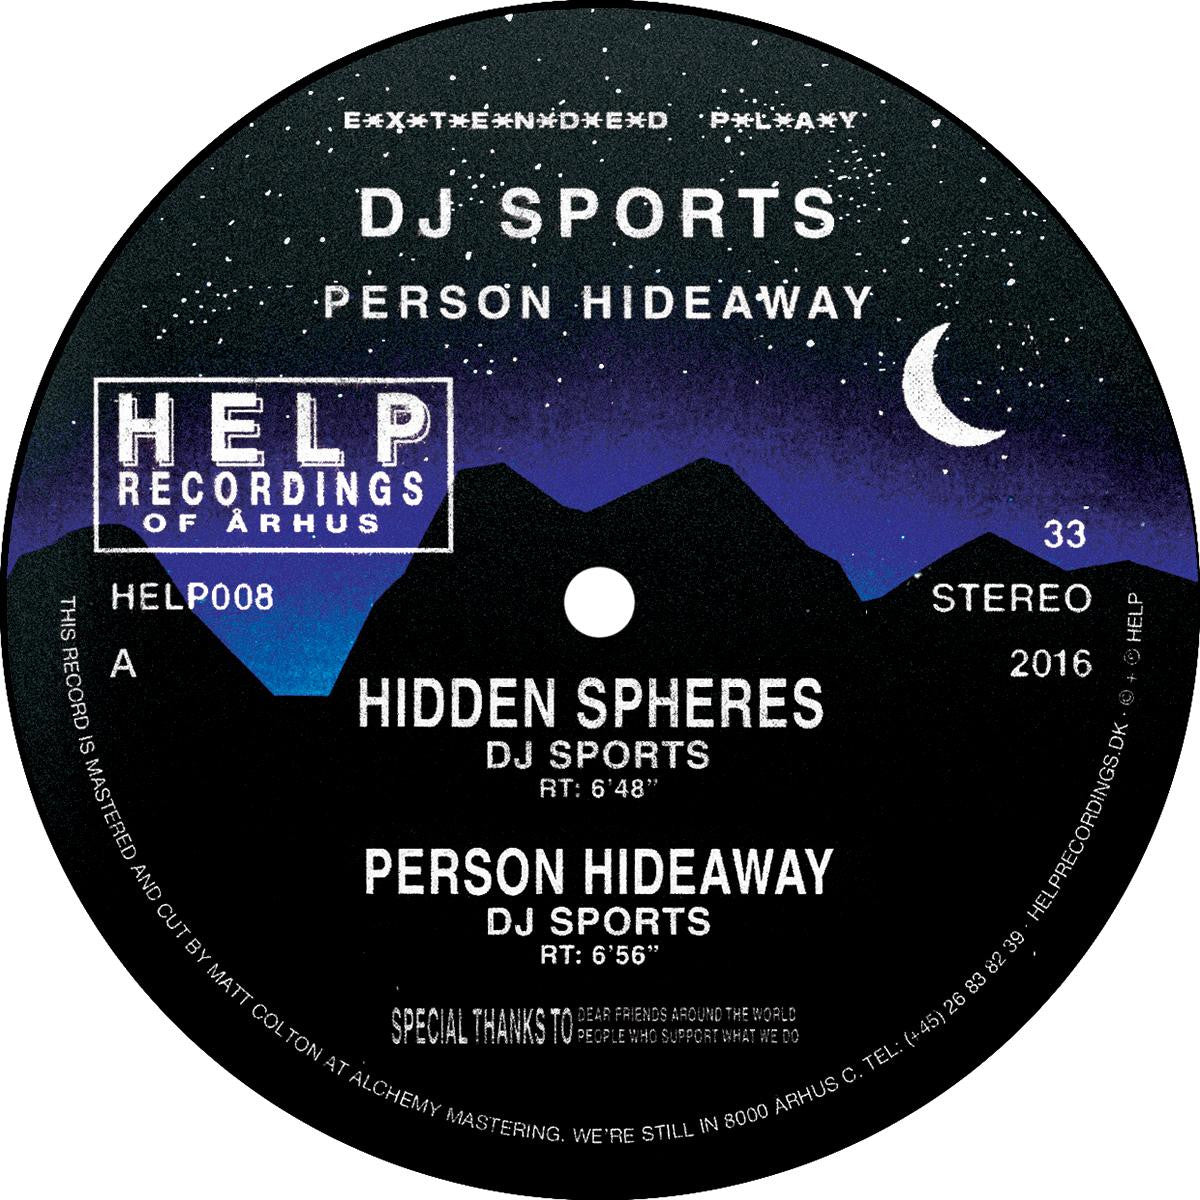 DJ Sports / SPCE - Person Hideaway , Vinyl - Help Recordings, Unearthed Sounds